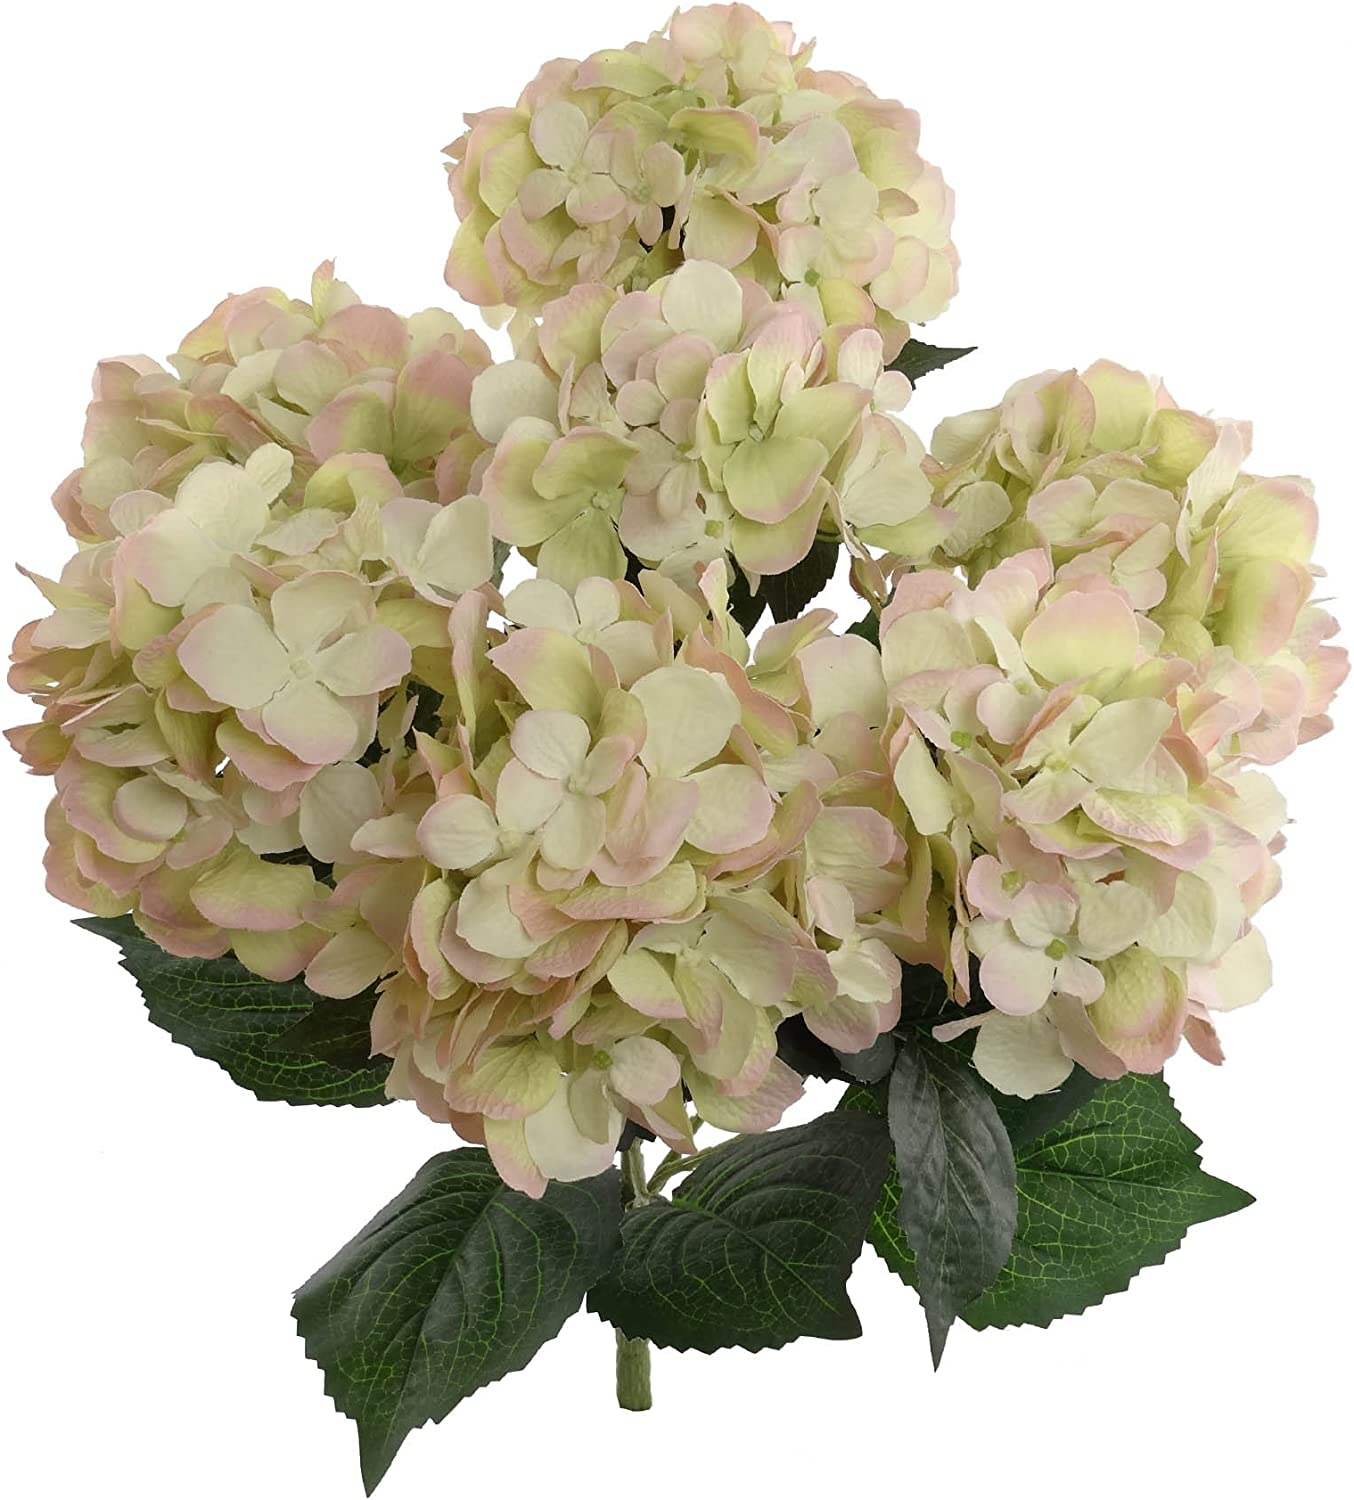 Hydrangea Silk Flowers Plant, Green Pink, Indoor Home Decor, Outdoor Plant, Wedding, Centerpieces, Bouquets, 2-Pack, Artificial Hydrangeas Bush with 7 Large Gorgeous Bloom Clusters, Leaves, Stems